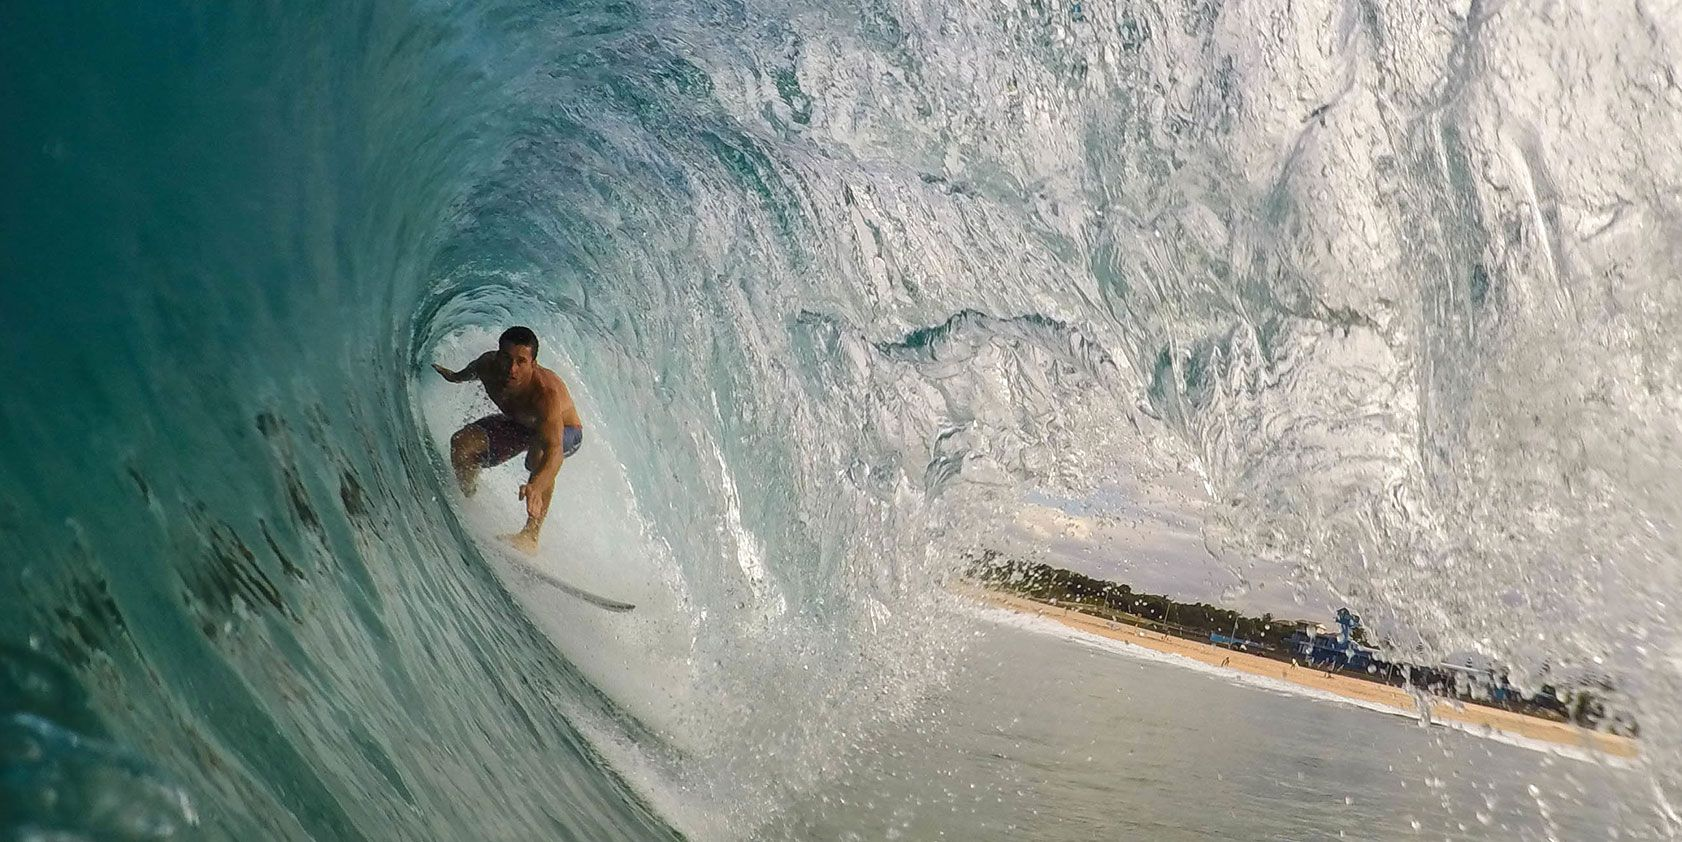 THE WELLNESS REPORT: SURF AND SPA